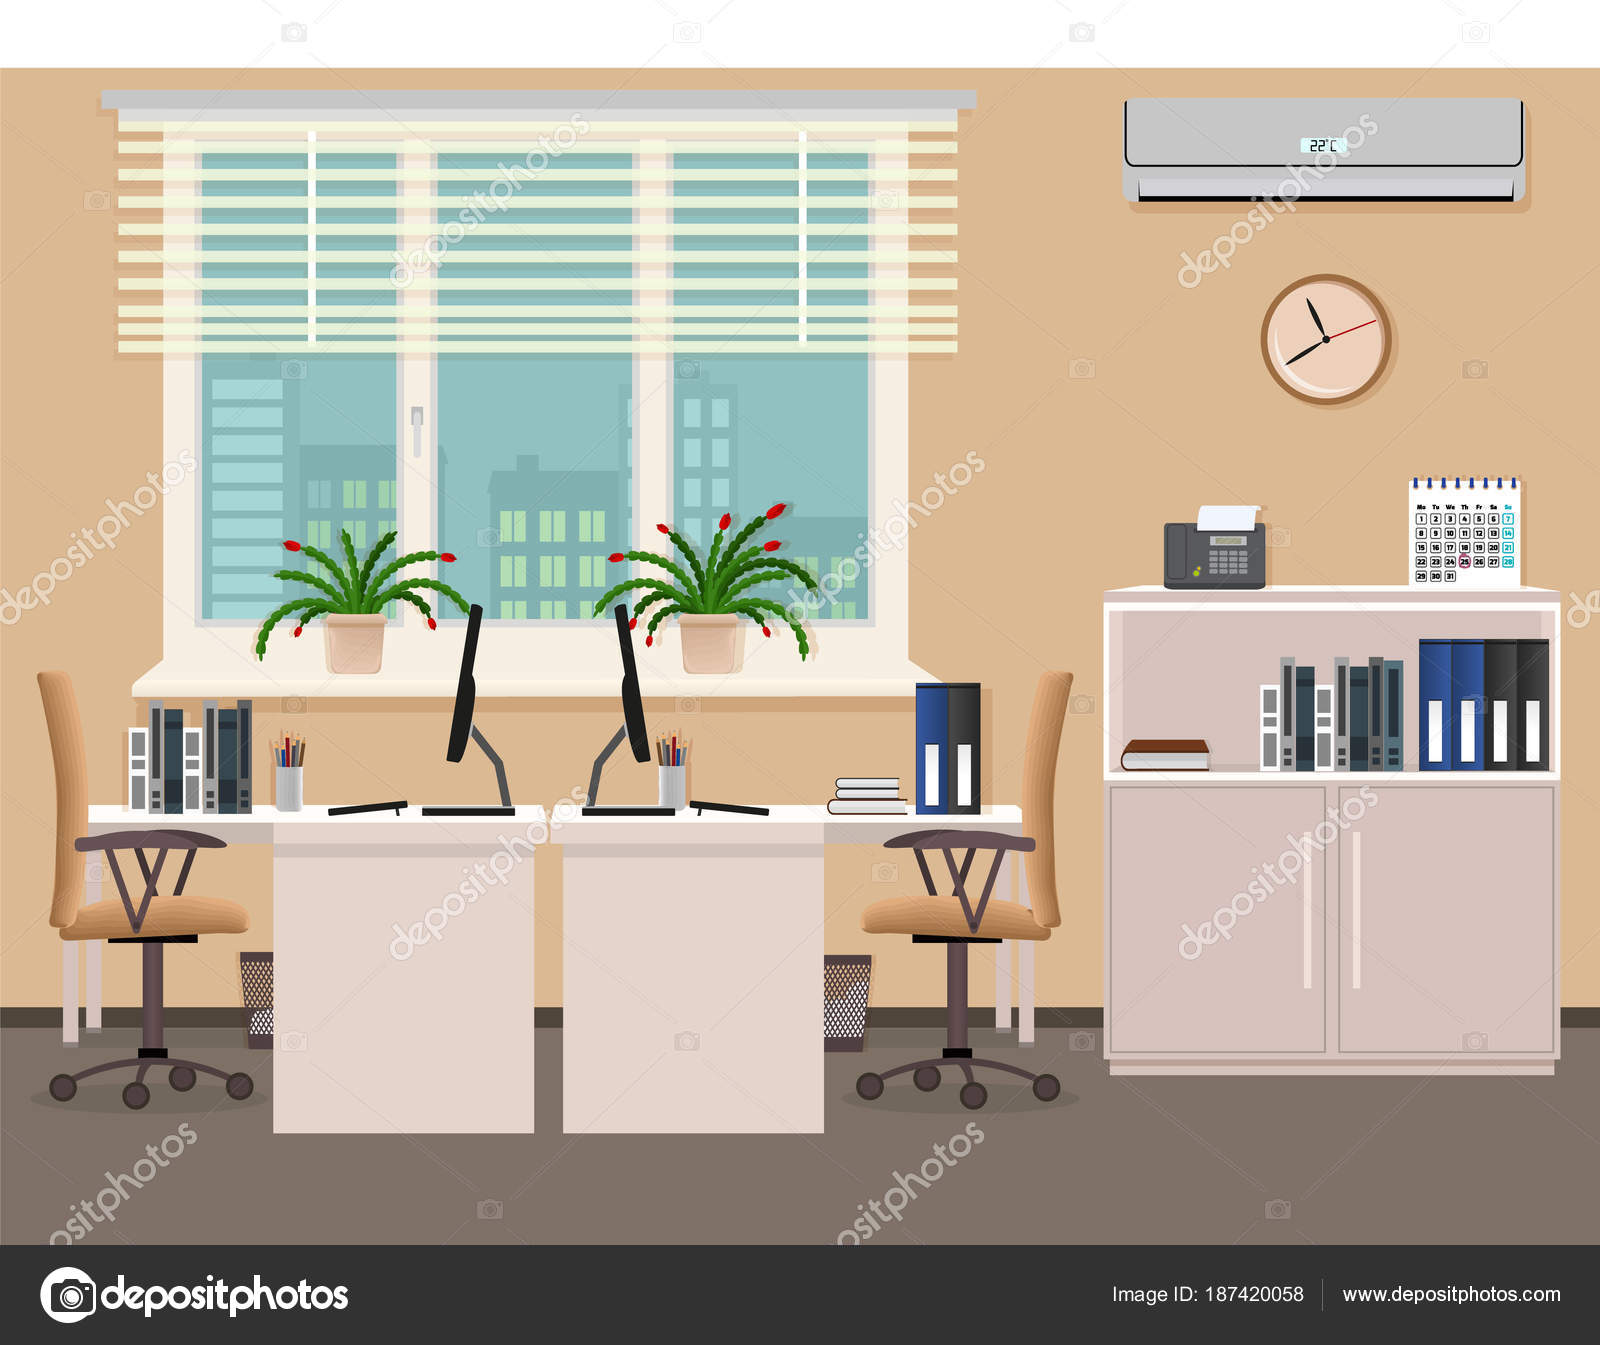 Office Room Interior Design Including Two Work Places With Air Conditioner Workplace Organization In Business Office Stock Vector C Generationclash85 Gmail Com 187420058